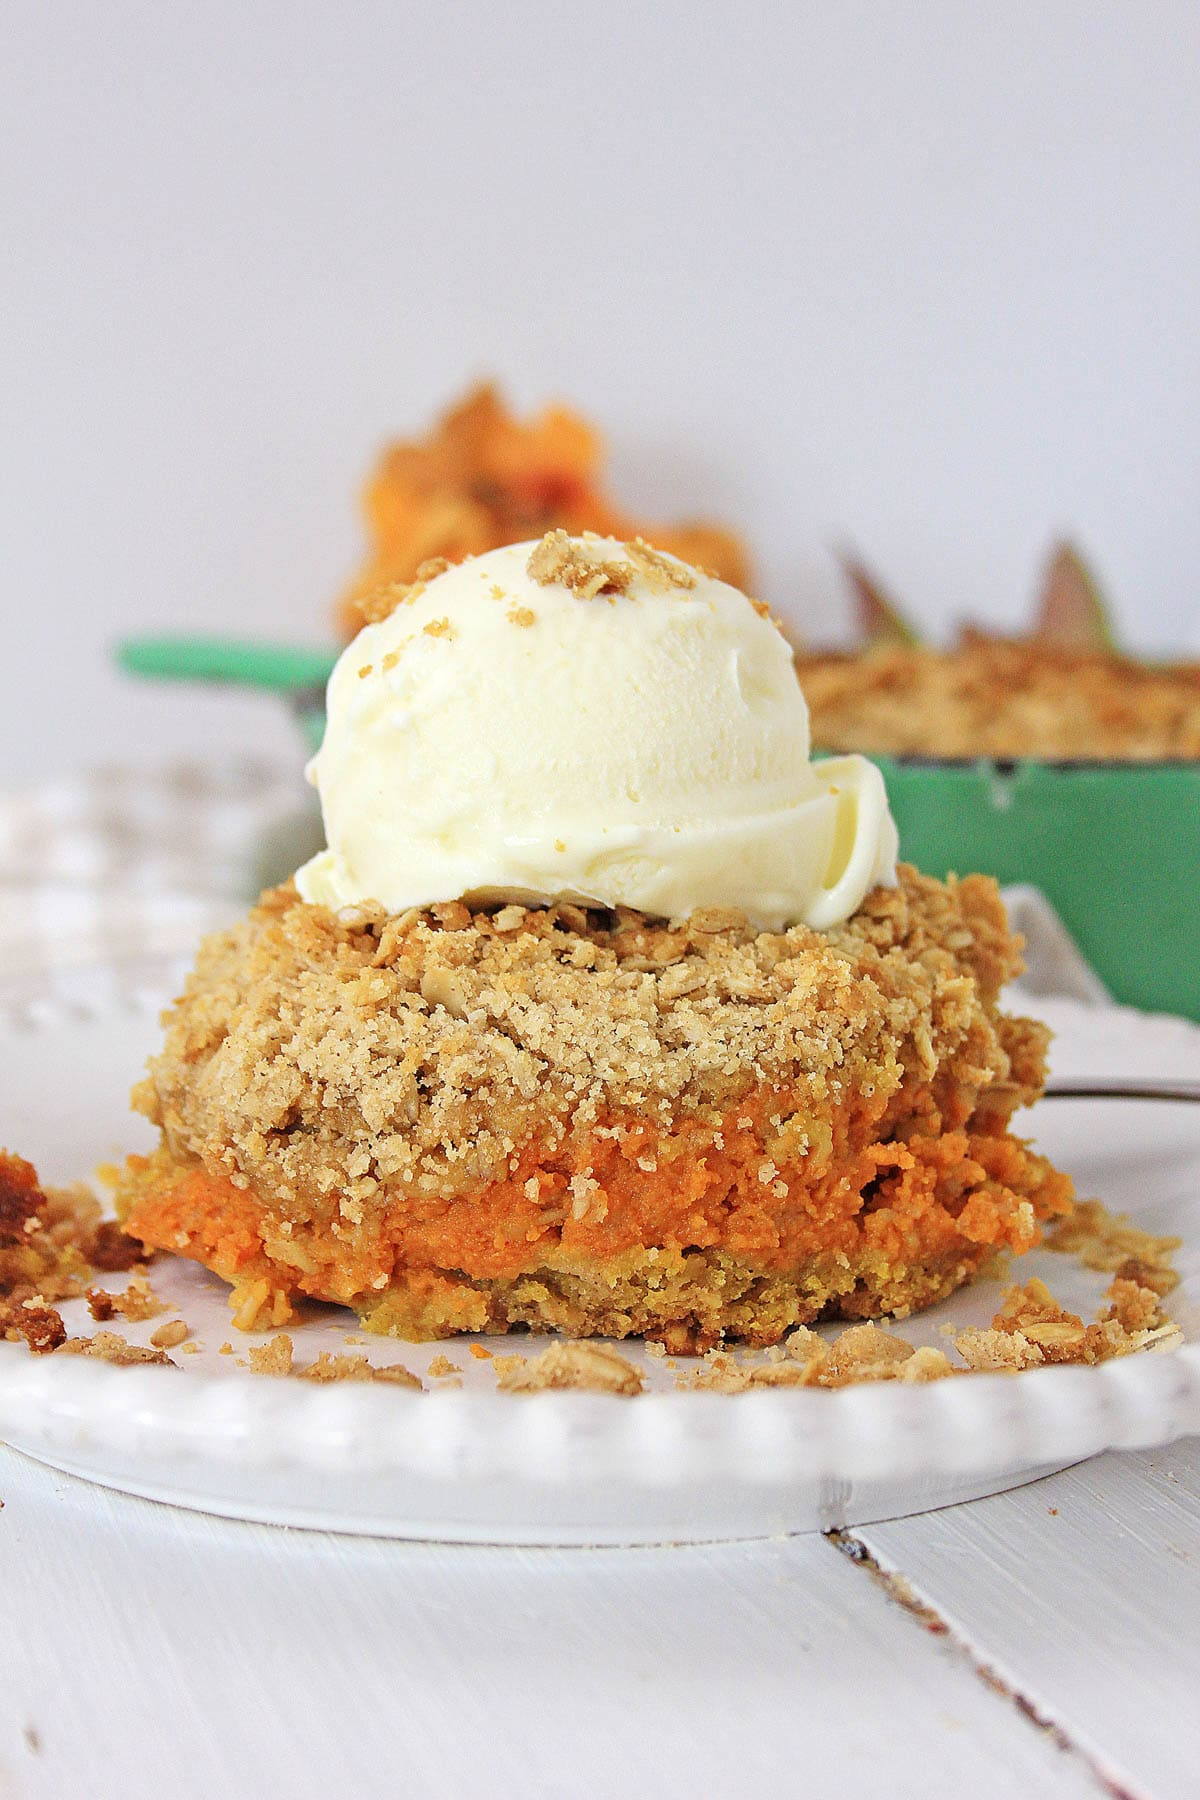 A close up image of a piece of pumpkin crisp with vanilla ice cream on top